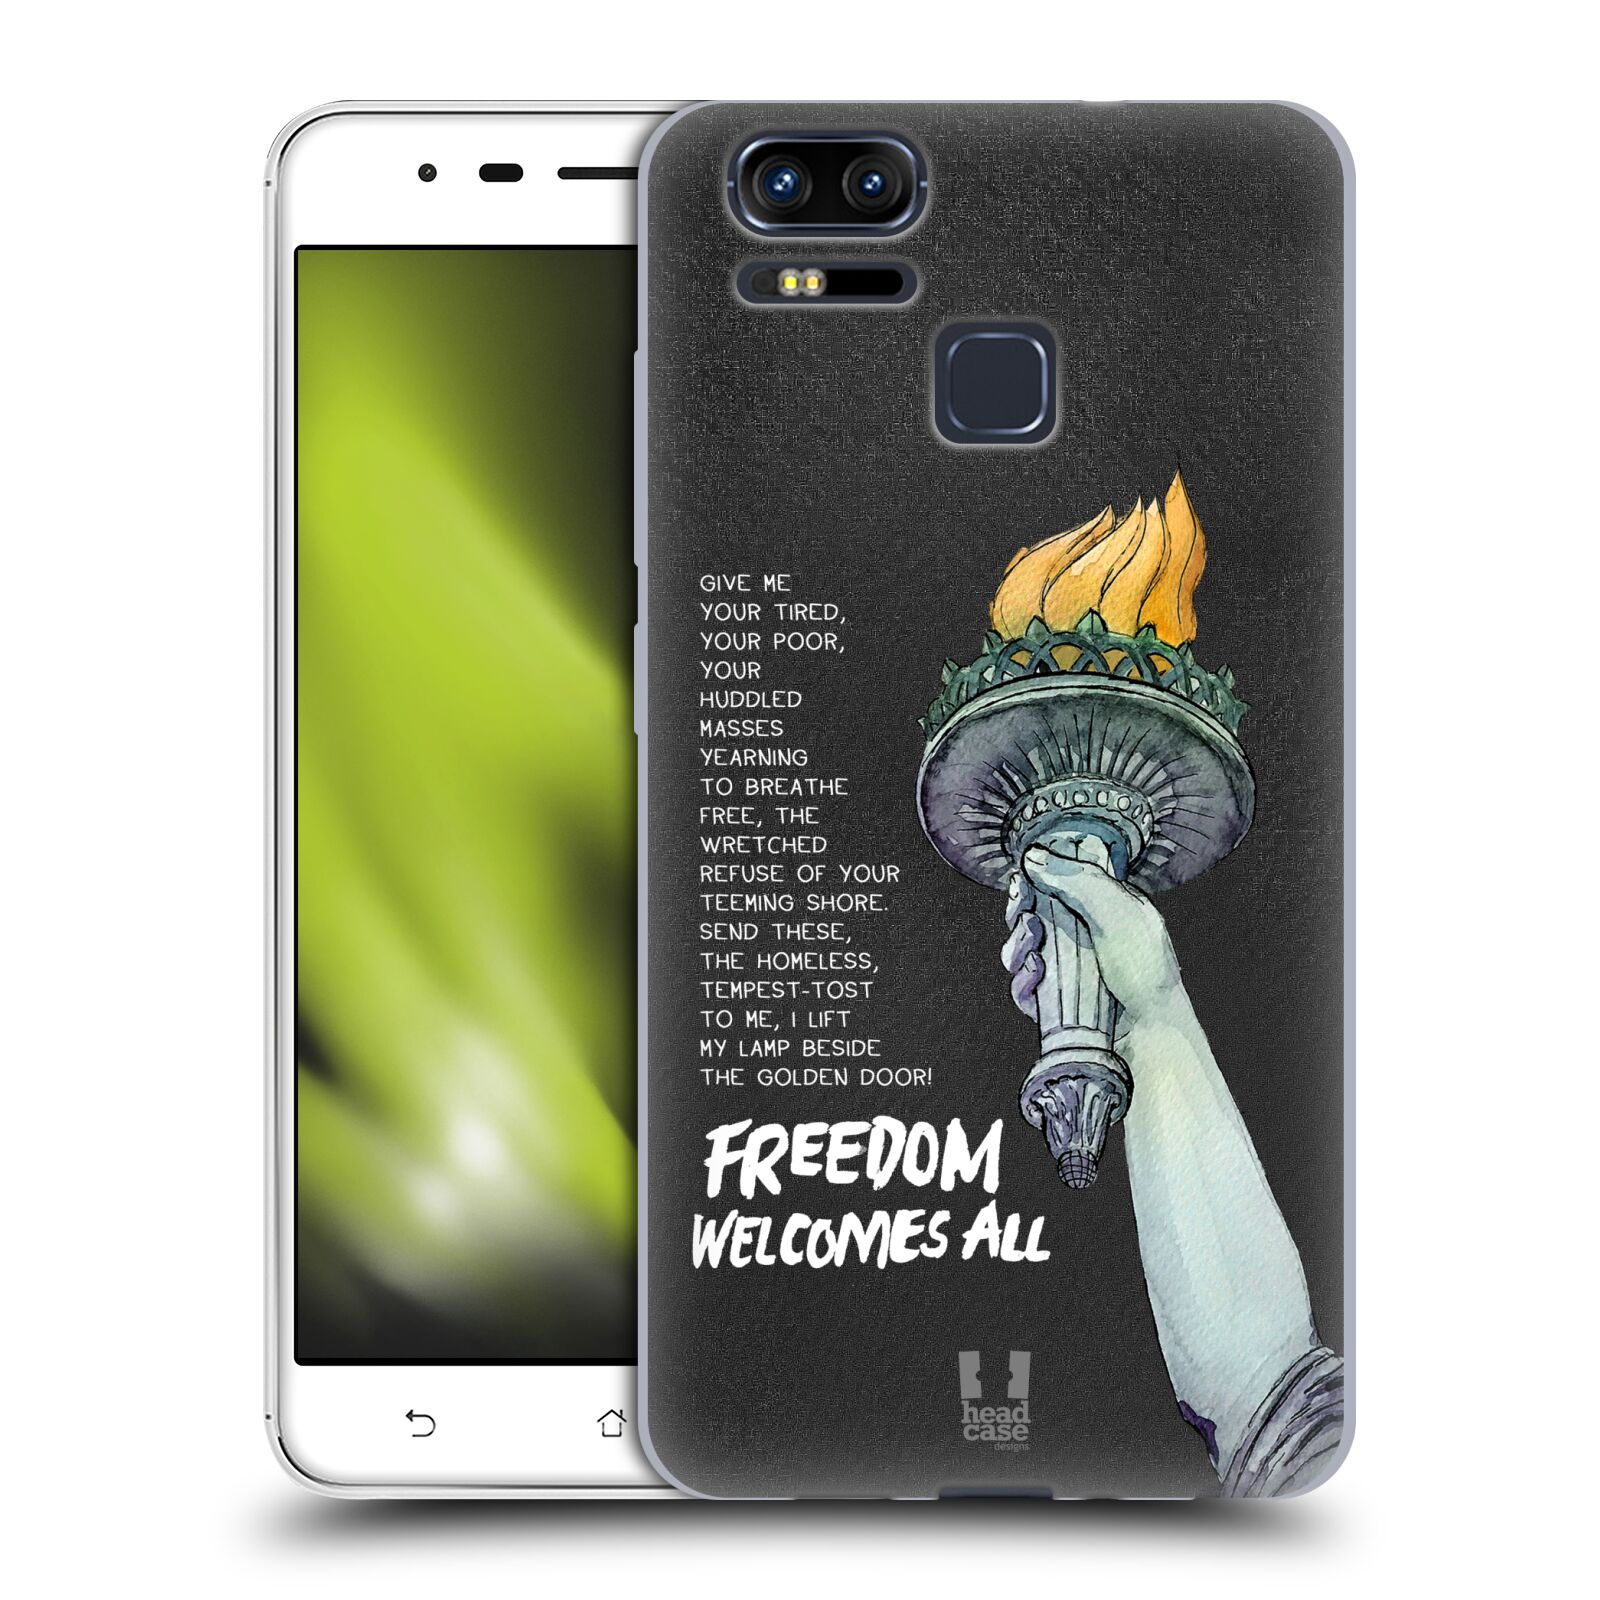 HEAD-CASE-DESIGNS-CONTEMPORARY-AMERICA-GEL-CASE-FOR-ASUS-ZENFONE-3-ZOOM-ZE553KL